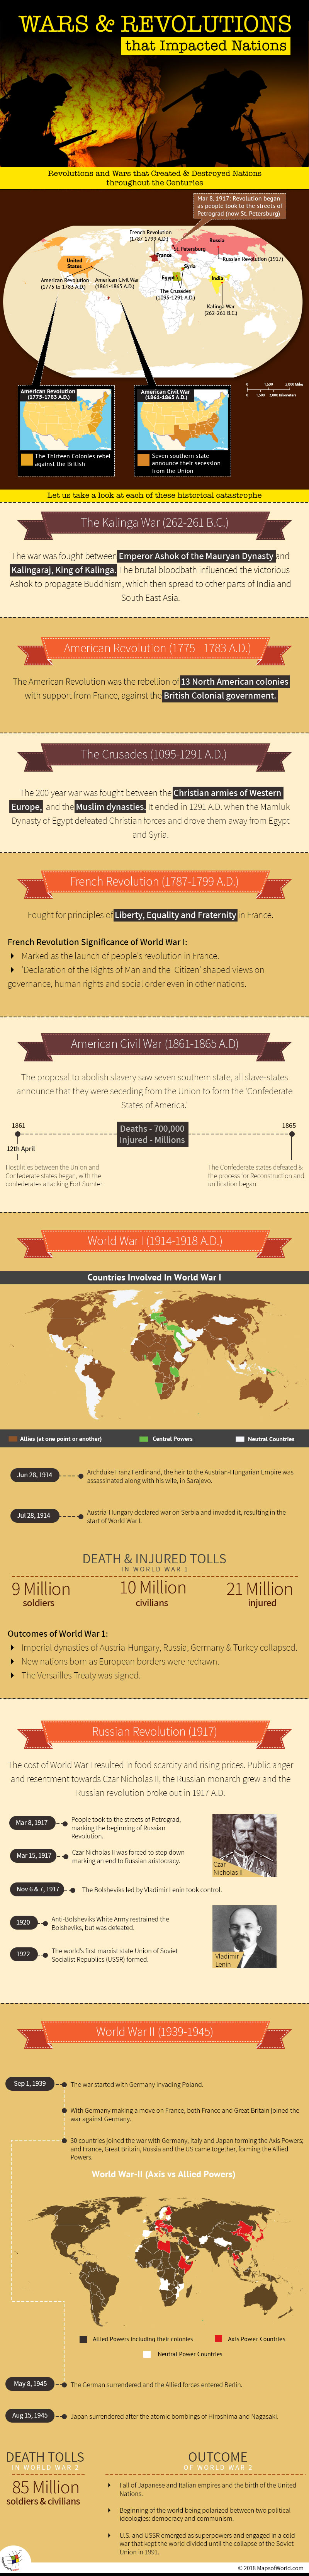 Infographic describing significant Wars and Revolutions of history